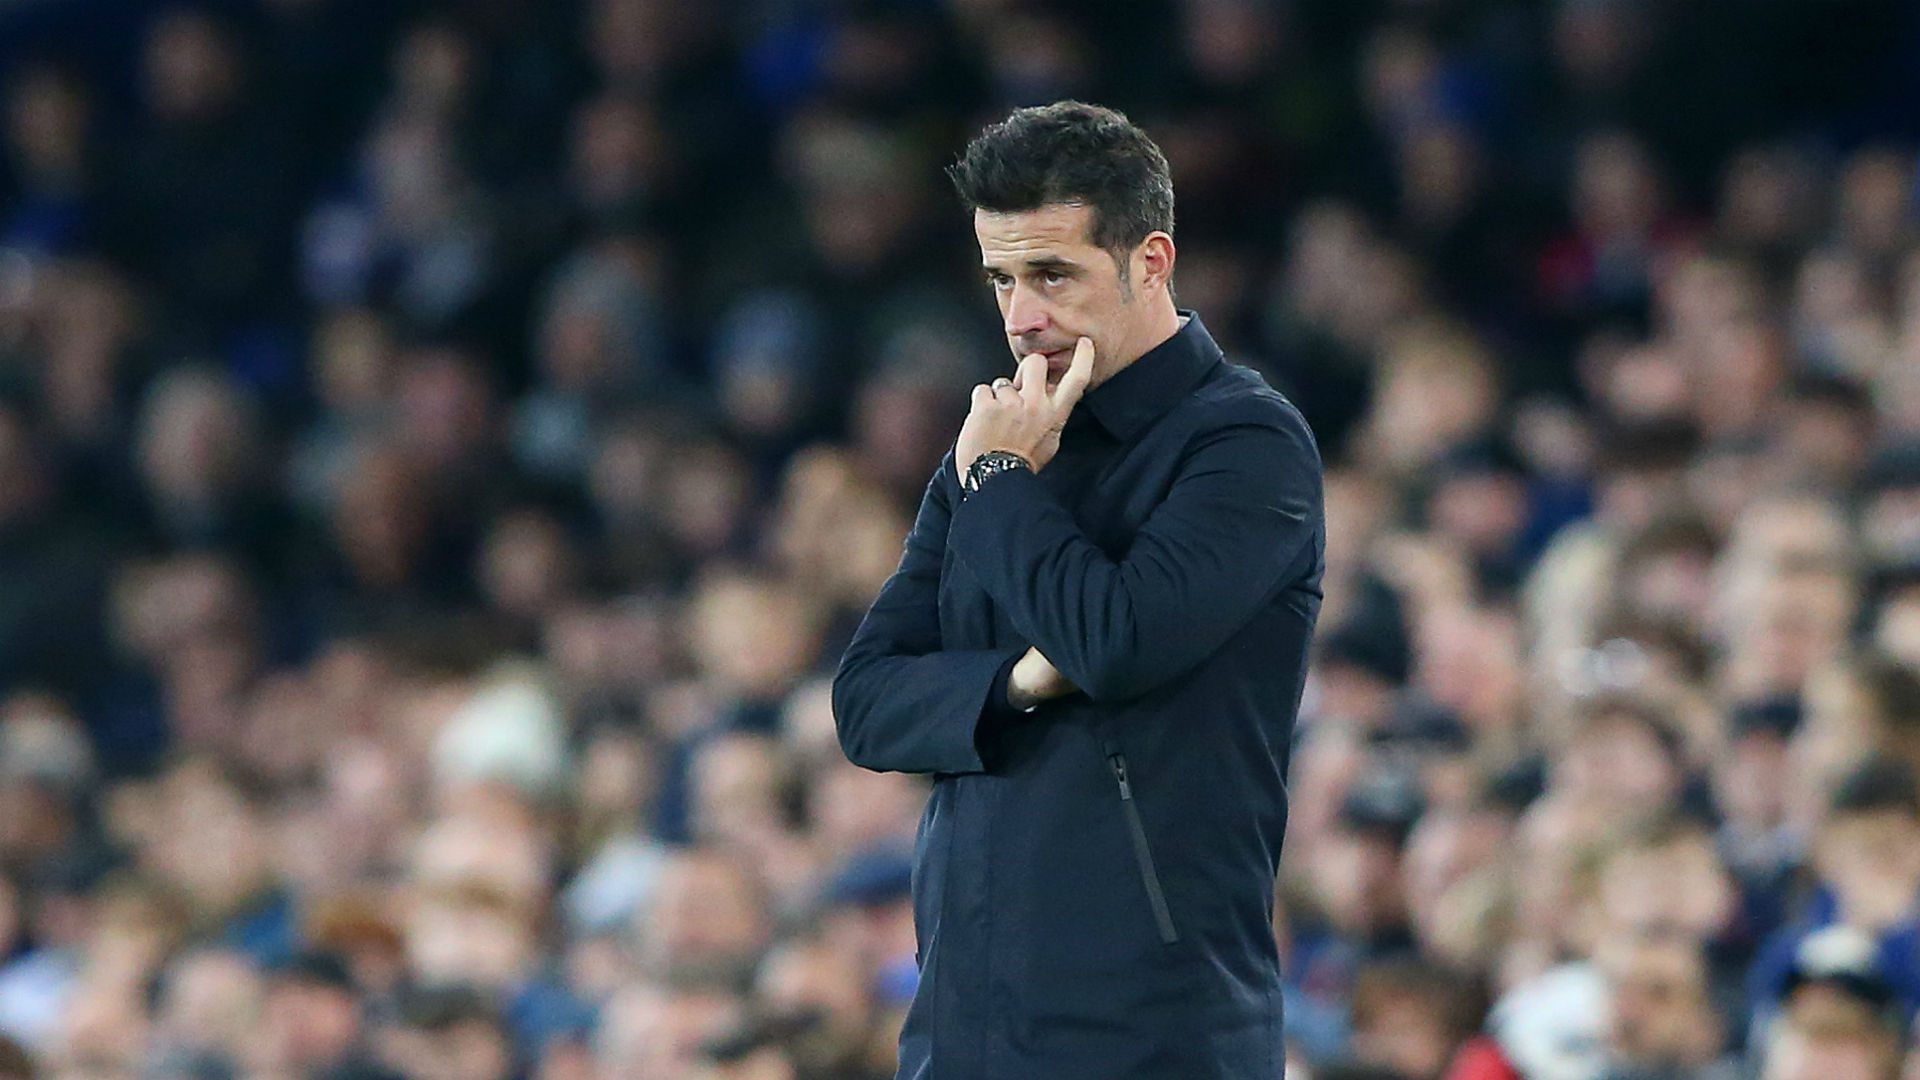 Marco Silva is under pressure after a poor start to the season at Everton but victory over Liverpool at Anfield could change everything.